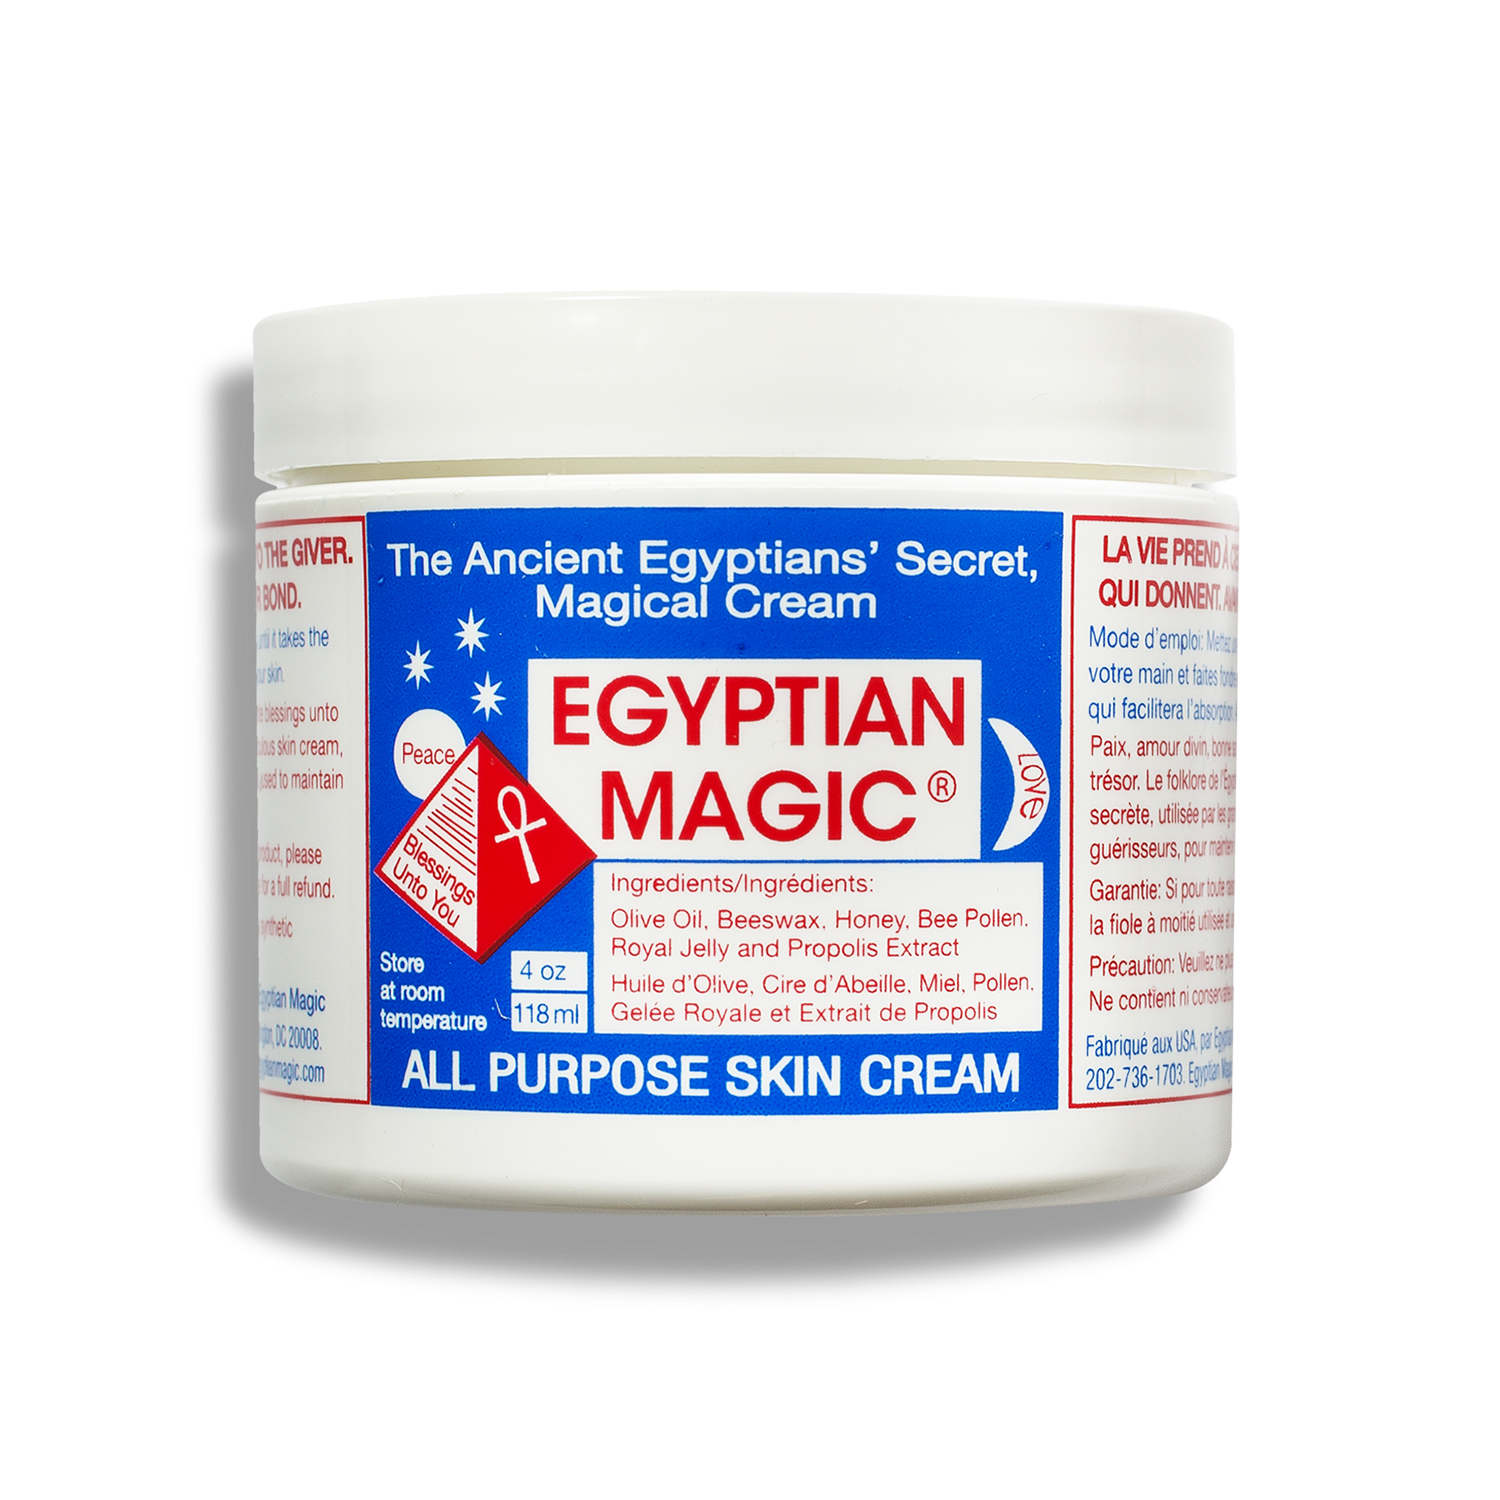 SKIN CARE:  Egyptian Magic  - I use this amazing product every night before going to bed. A must have to take care of your skin.